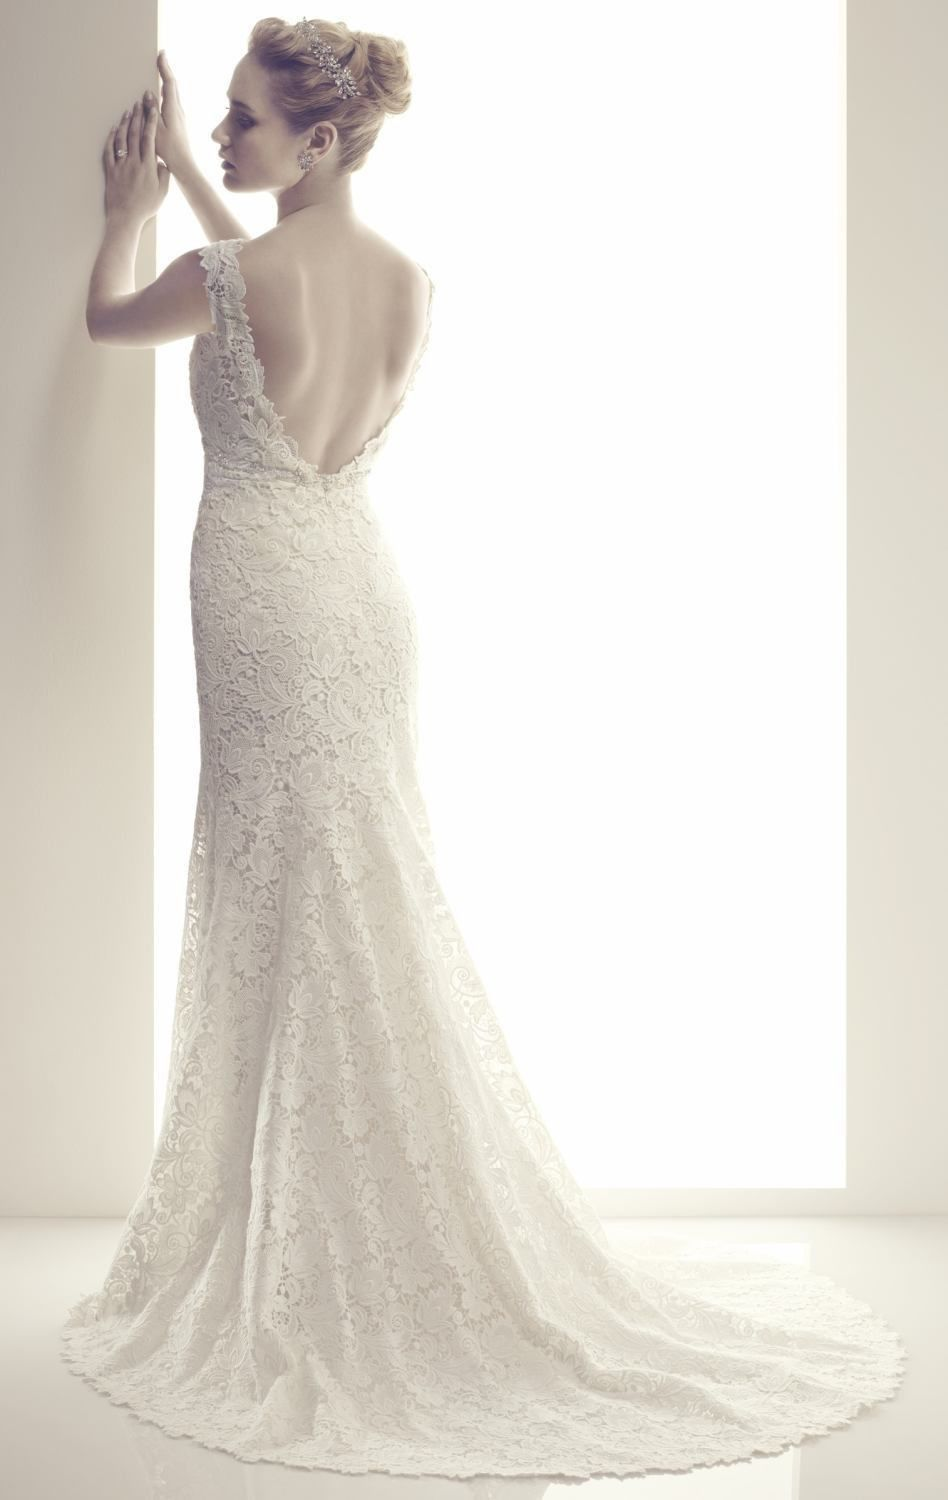 New sheath white ivory v neck wedding dresses backless venice lace